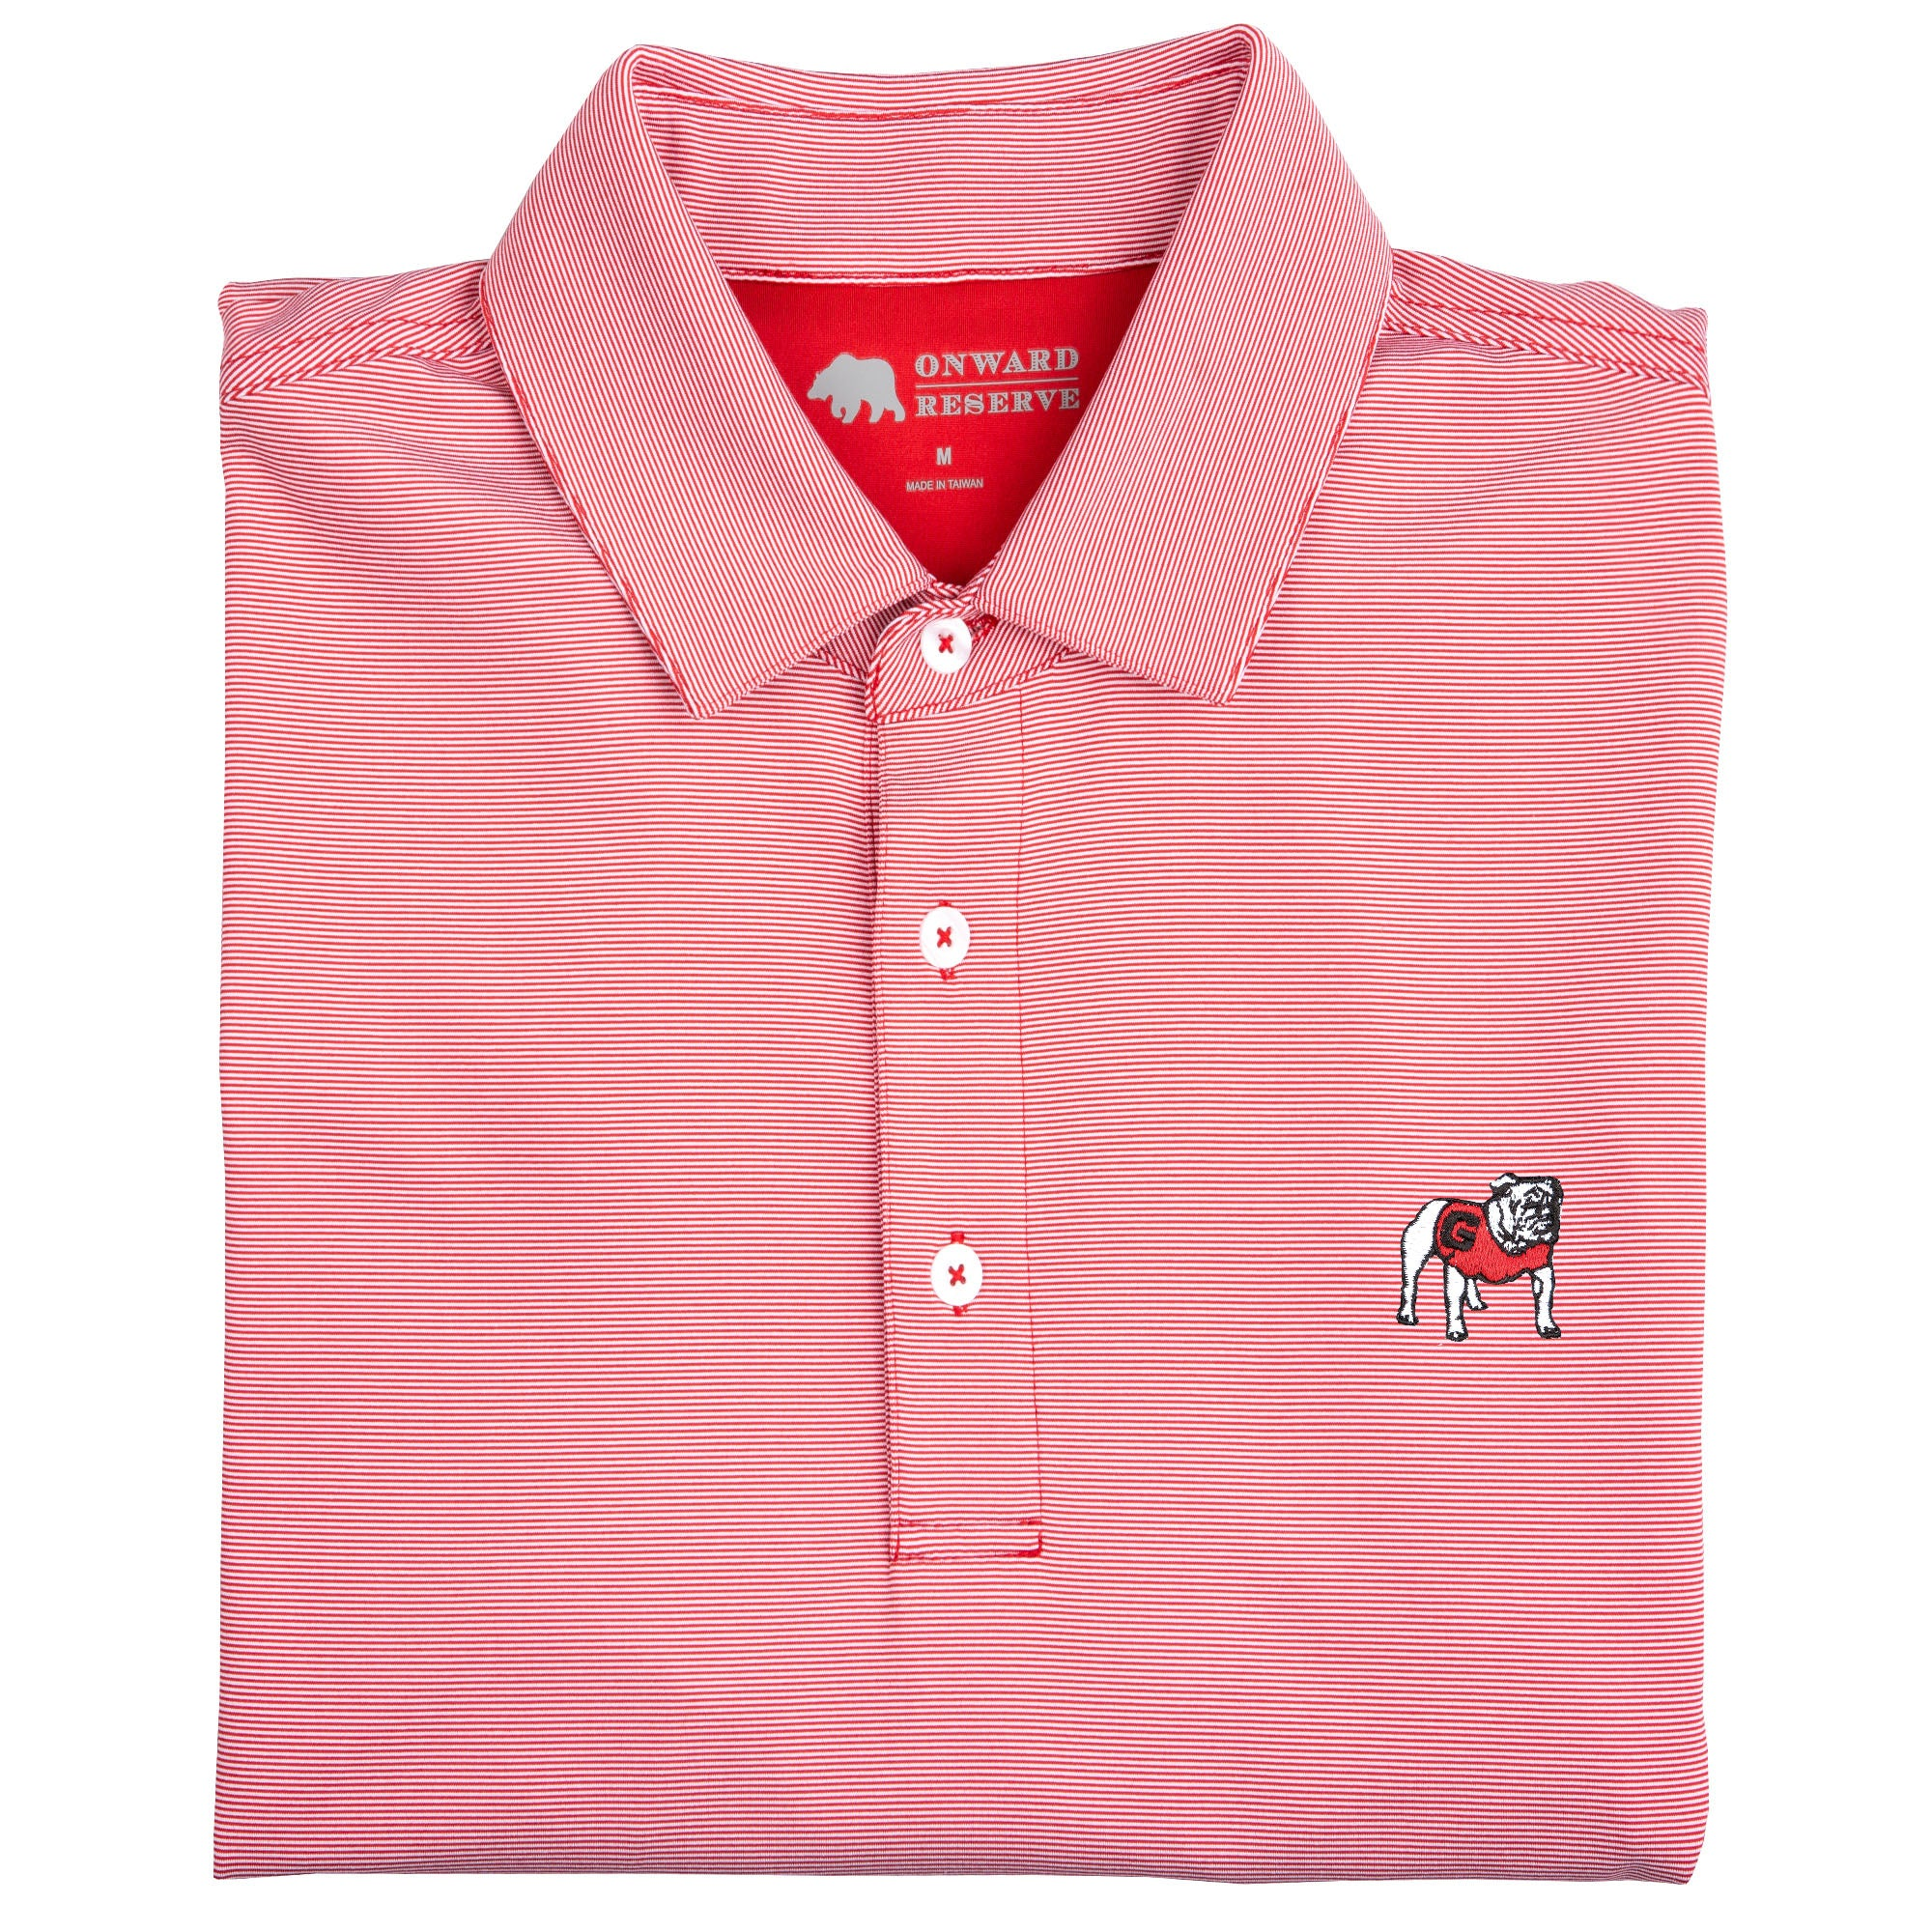 Hairline Stripe Standing Bulldog Polo - Onward Reserve